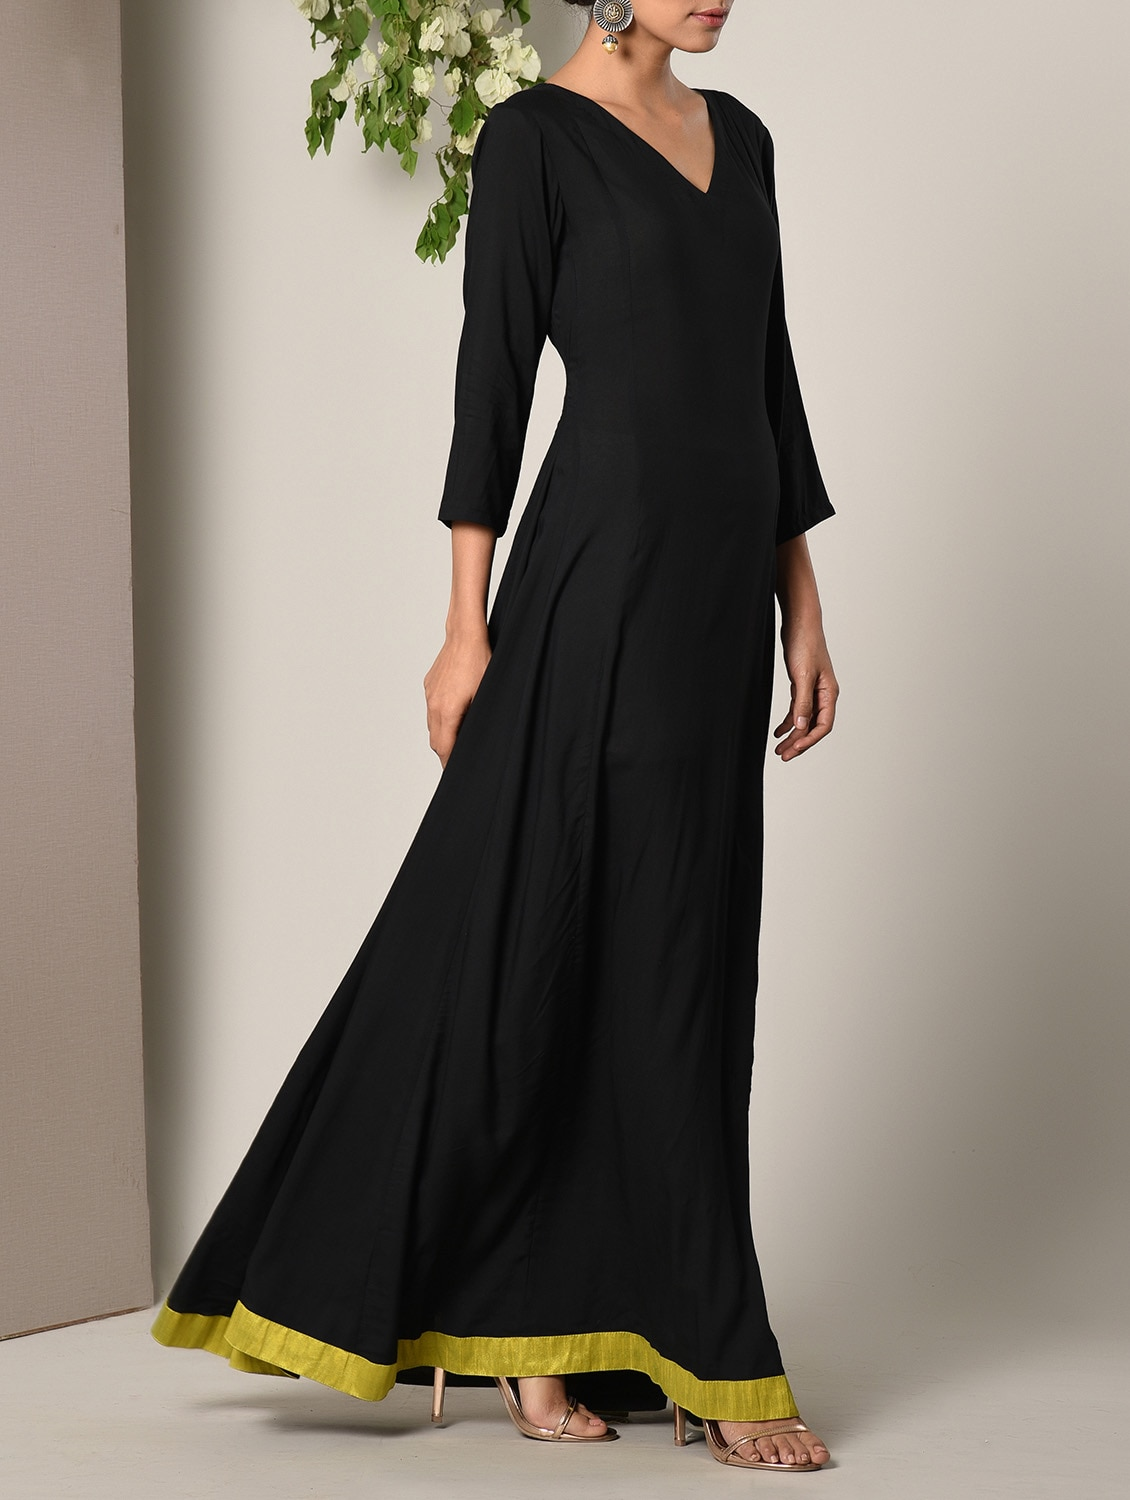 304bf6bb5ab6 Buy Black Solid Maxi Dress for Women from Truebrowns for ₹2999 at 0% off |  2019 Limeroad.com